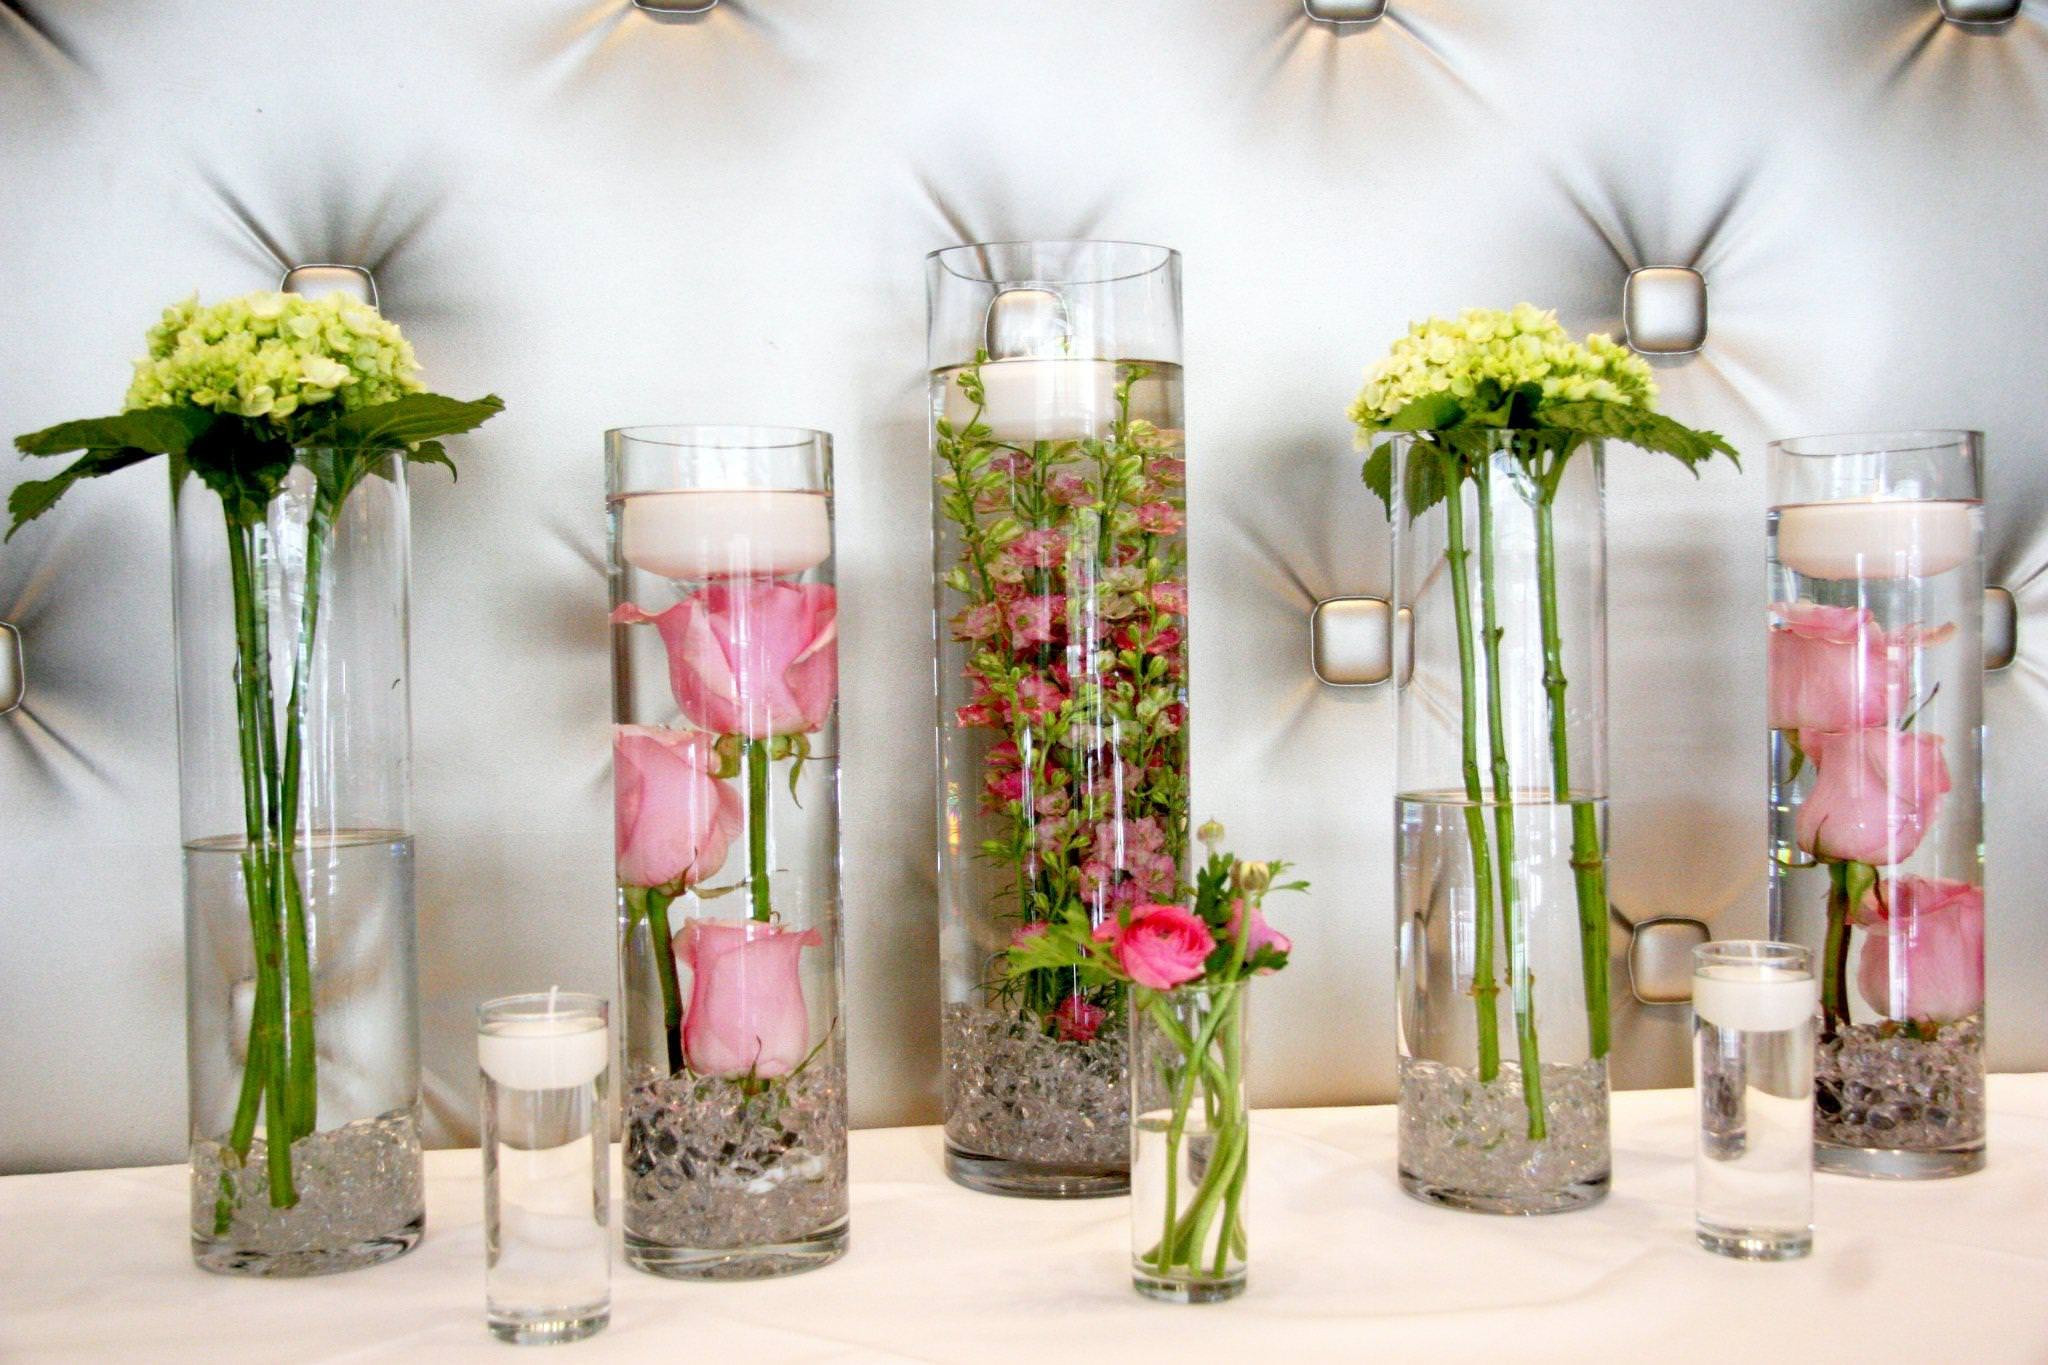 tall brown glass vase of decorating ideas for tall vases awesome h vases giant floor vase i inside decorating ideas for tall vases beautiful floor decor vase tall ideash vases arrangement ideas fill a